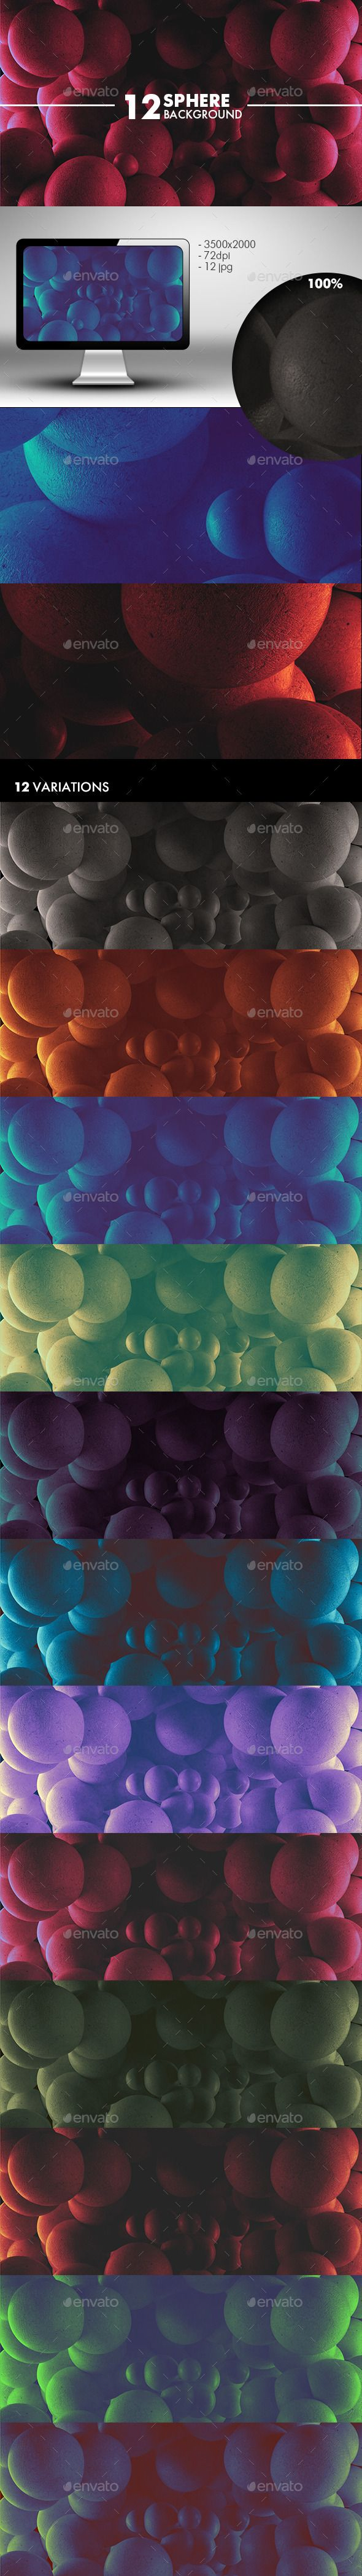 Sphere Background by Kanilo Website and Desktop Backgrounds Size: 35002000px, RGB , 72dpi 12 High Resolution JPGs